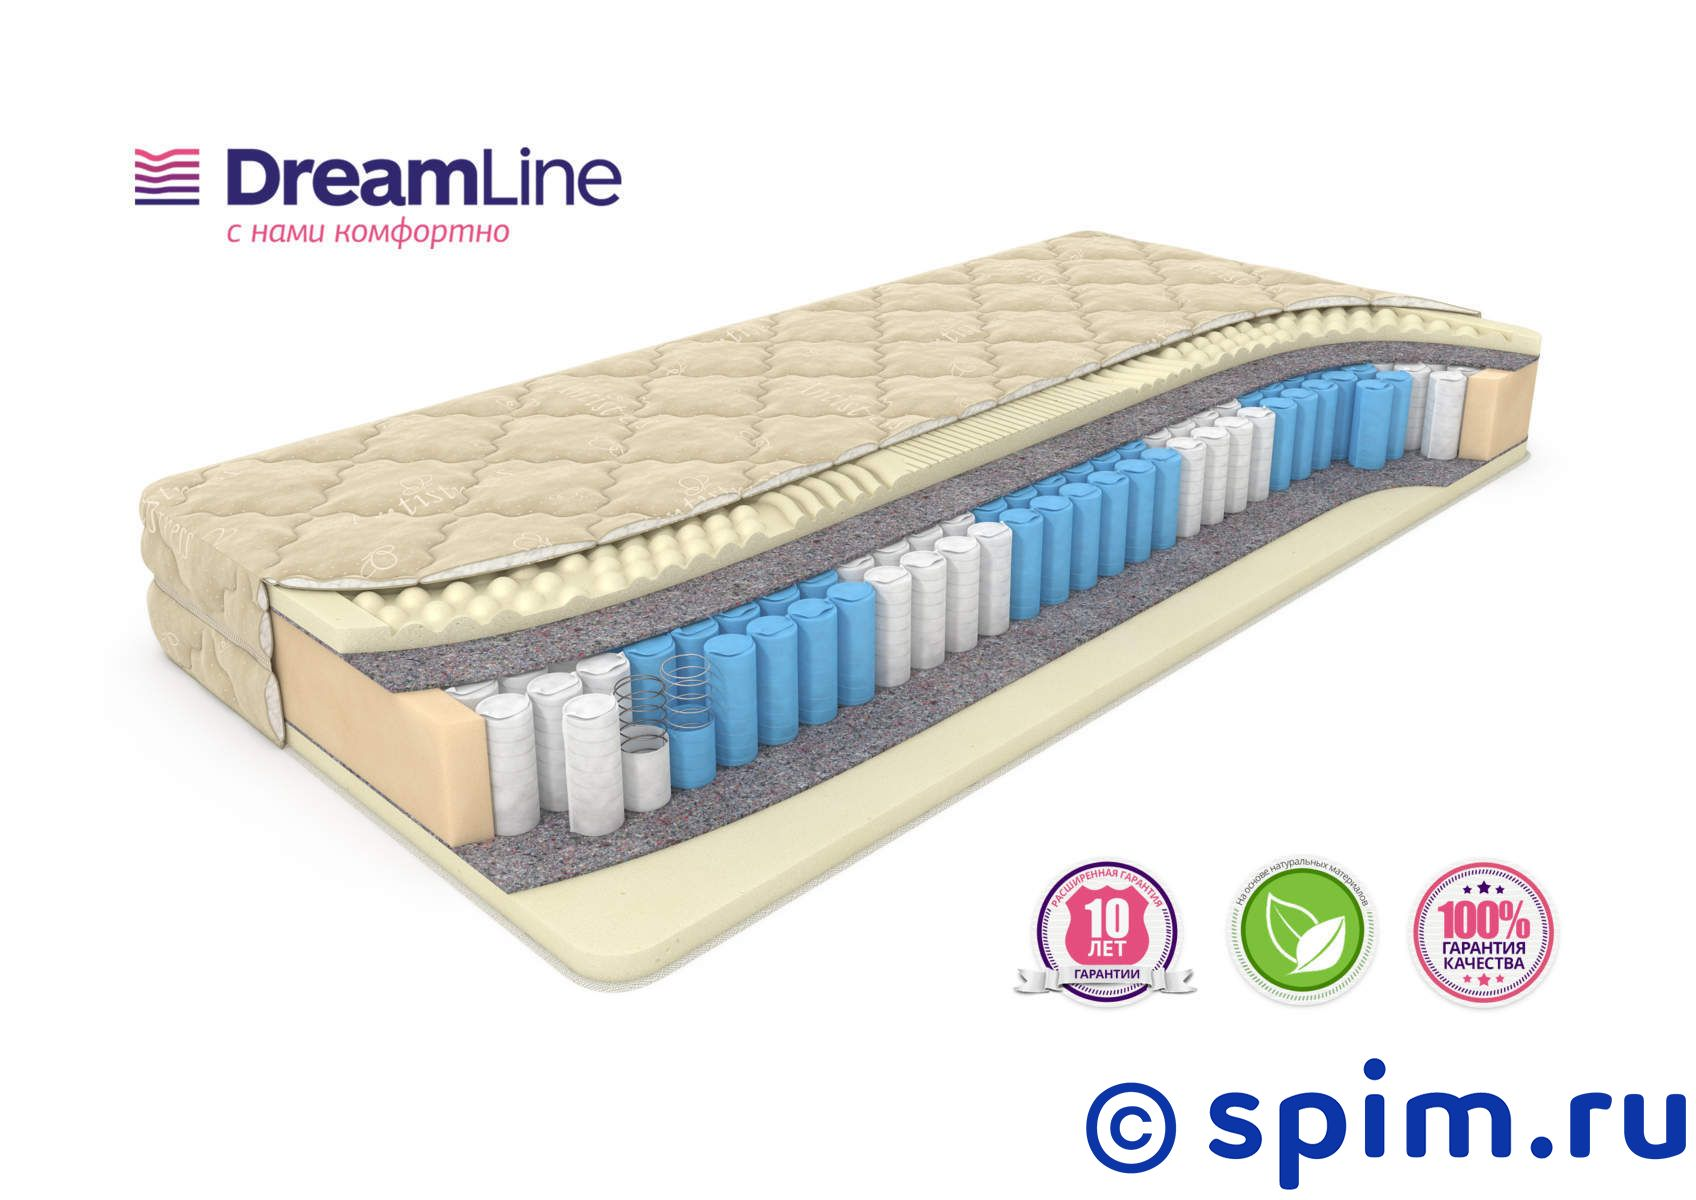 Матрас DreamLine Sleep Smart Zone 160х190 см матрас dreamline mix smart zone 120х200